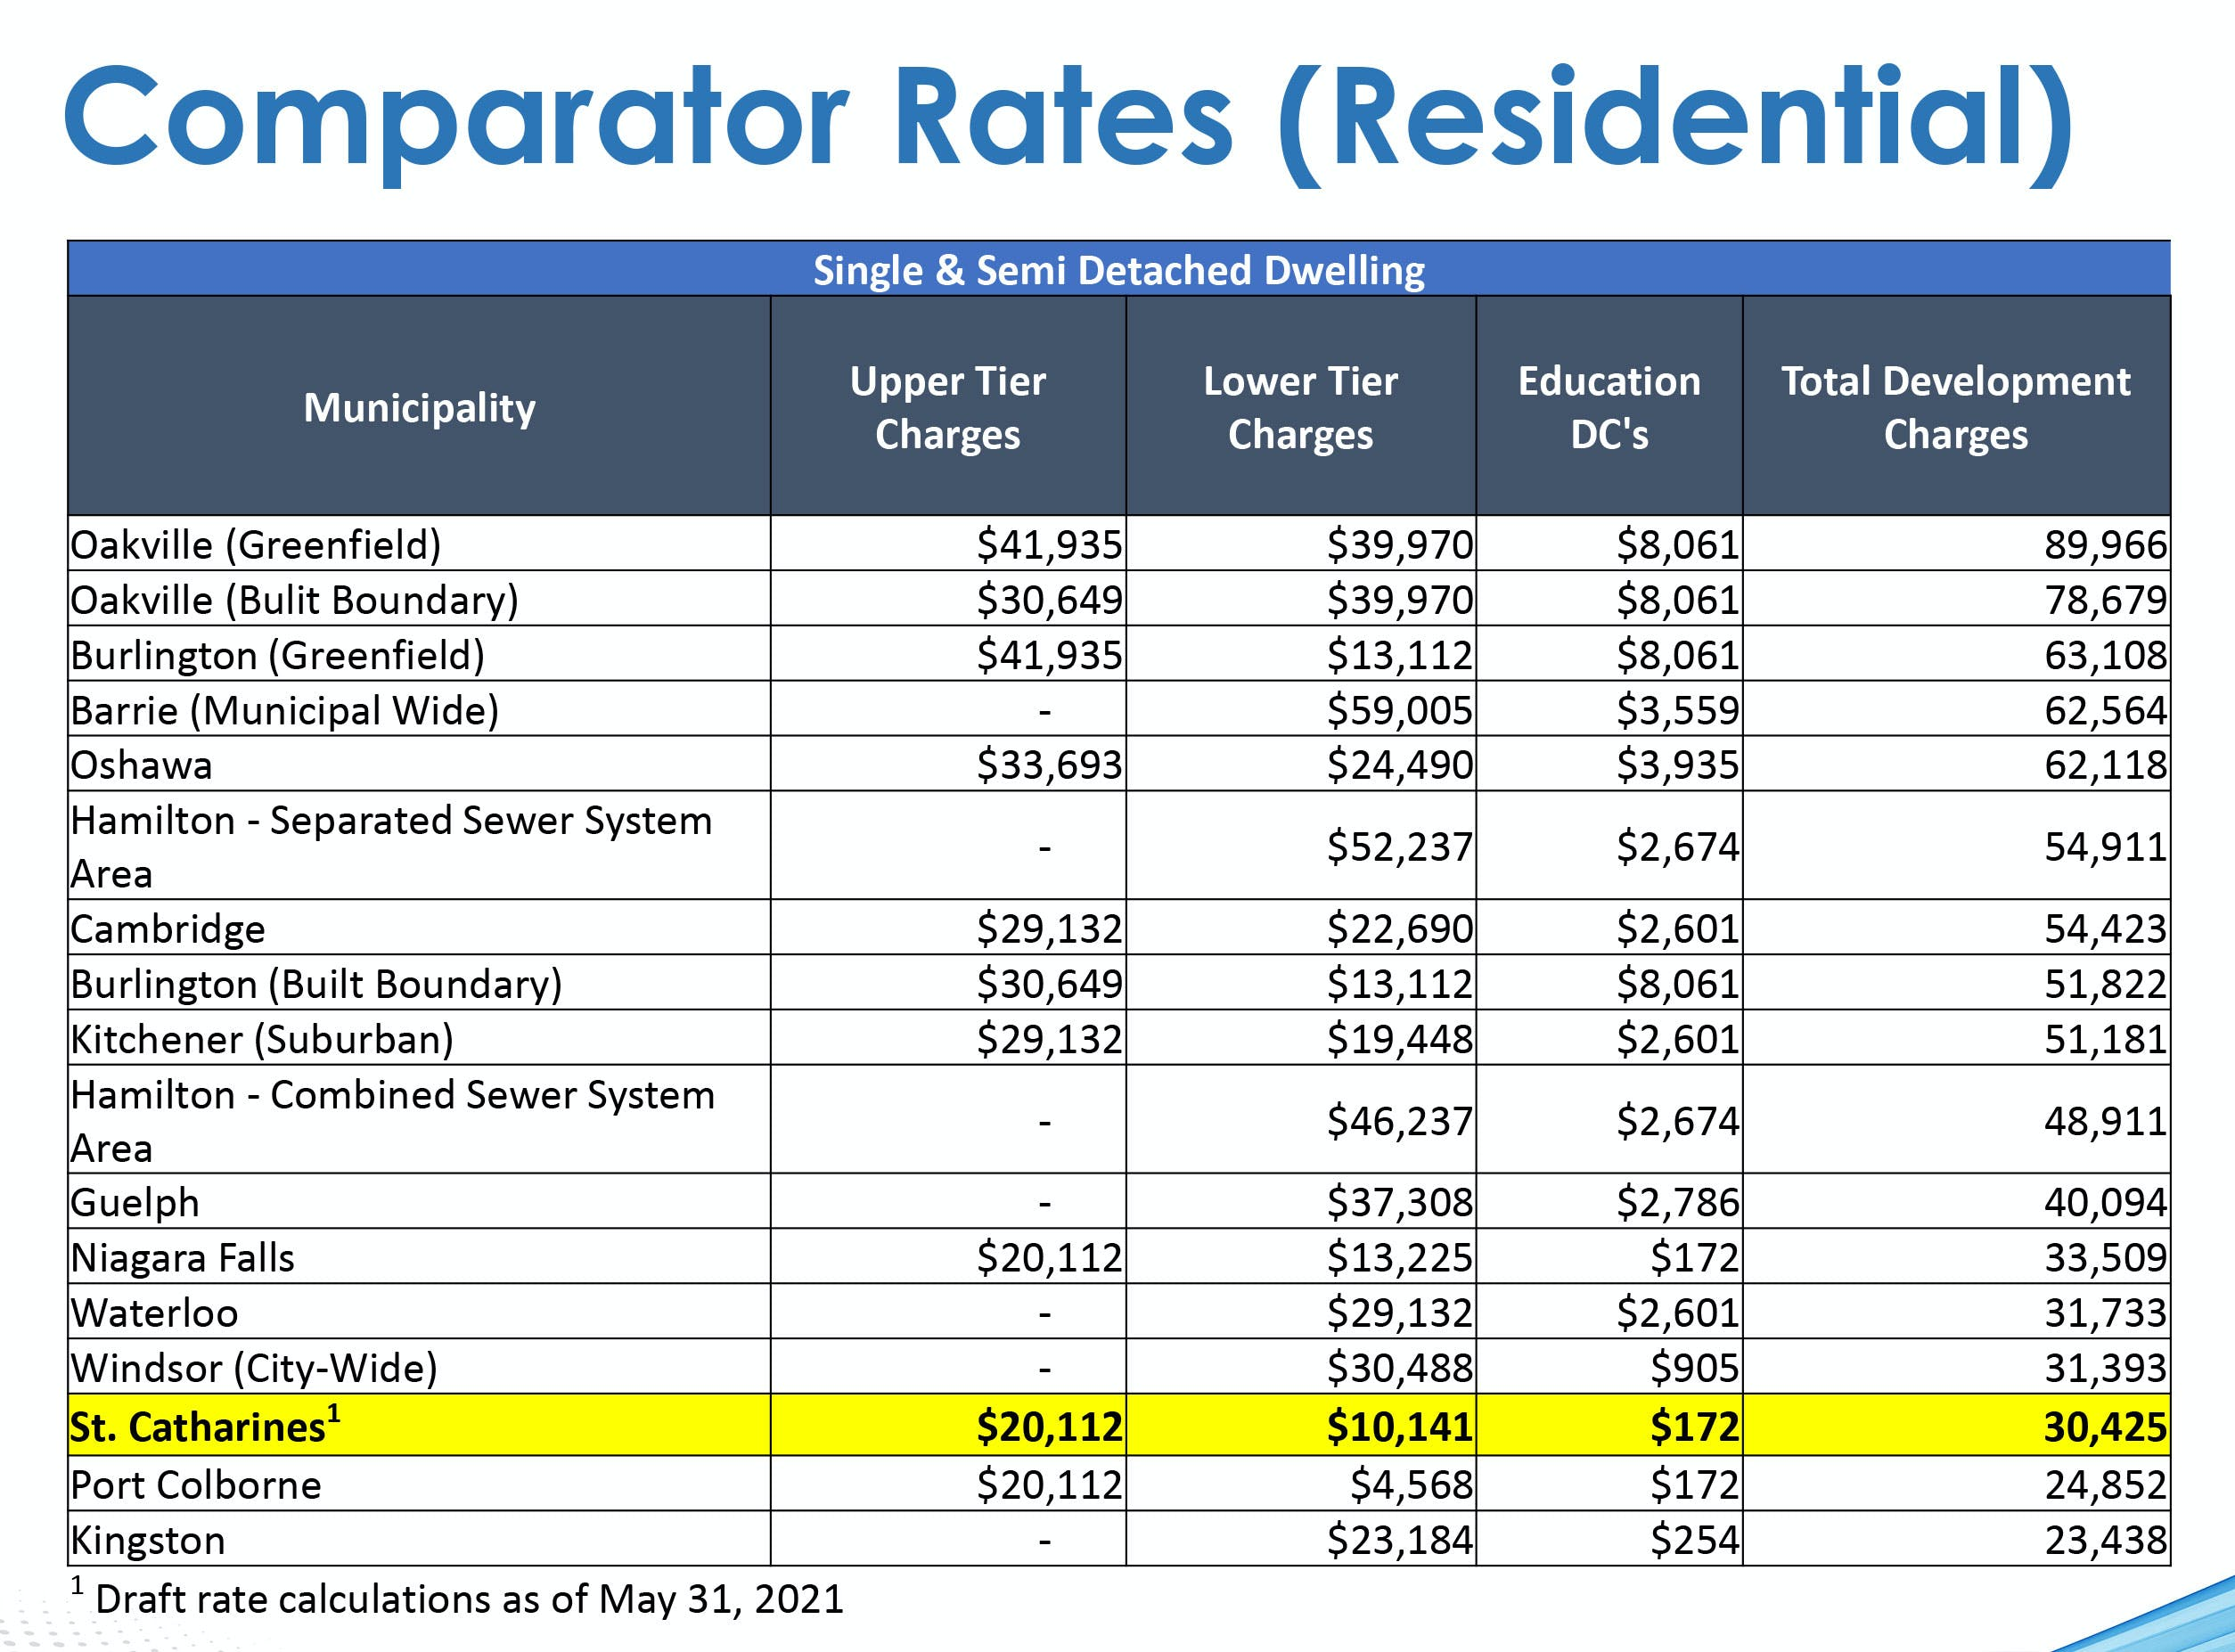 Comparator rate residential